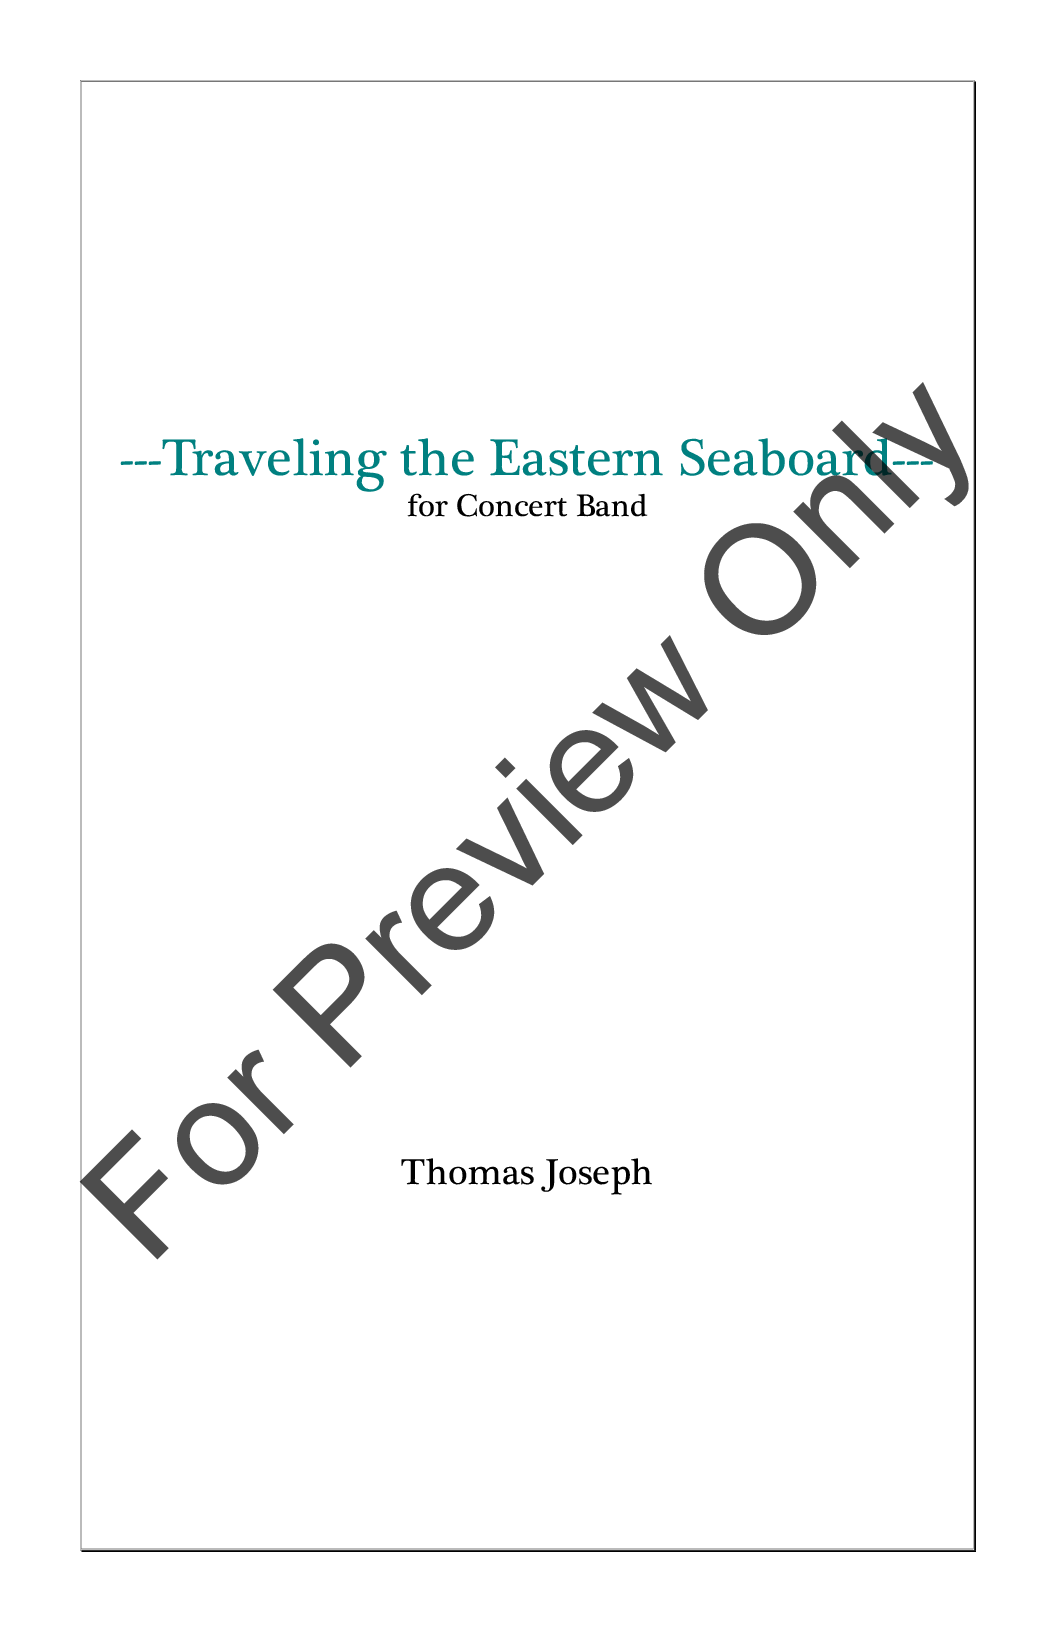 Traveling the Eastern Seaboard Thumbnail